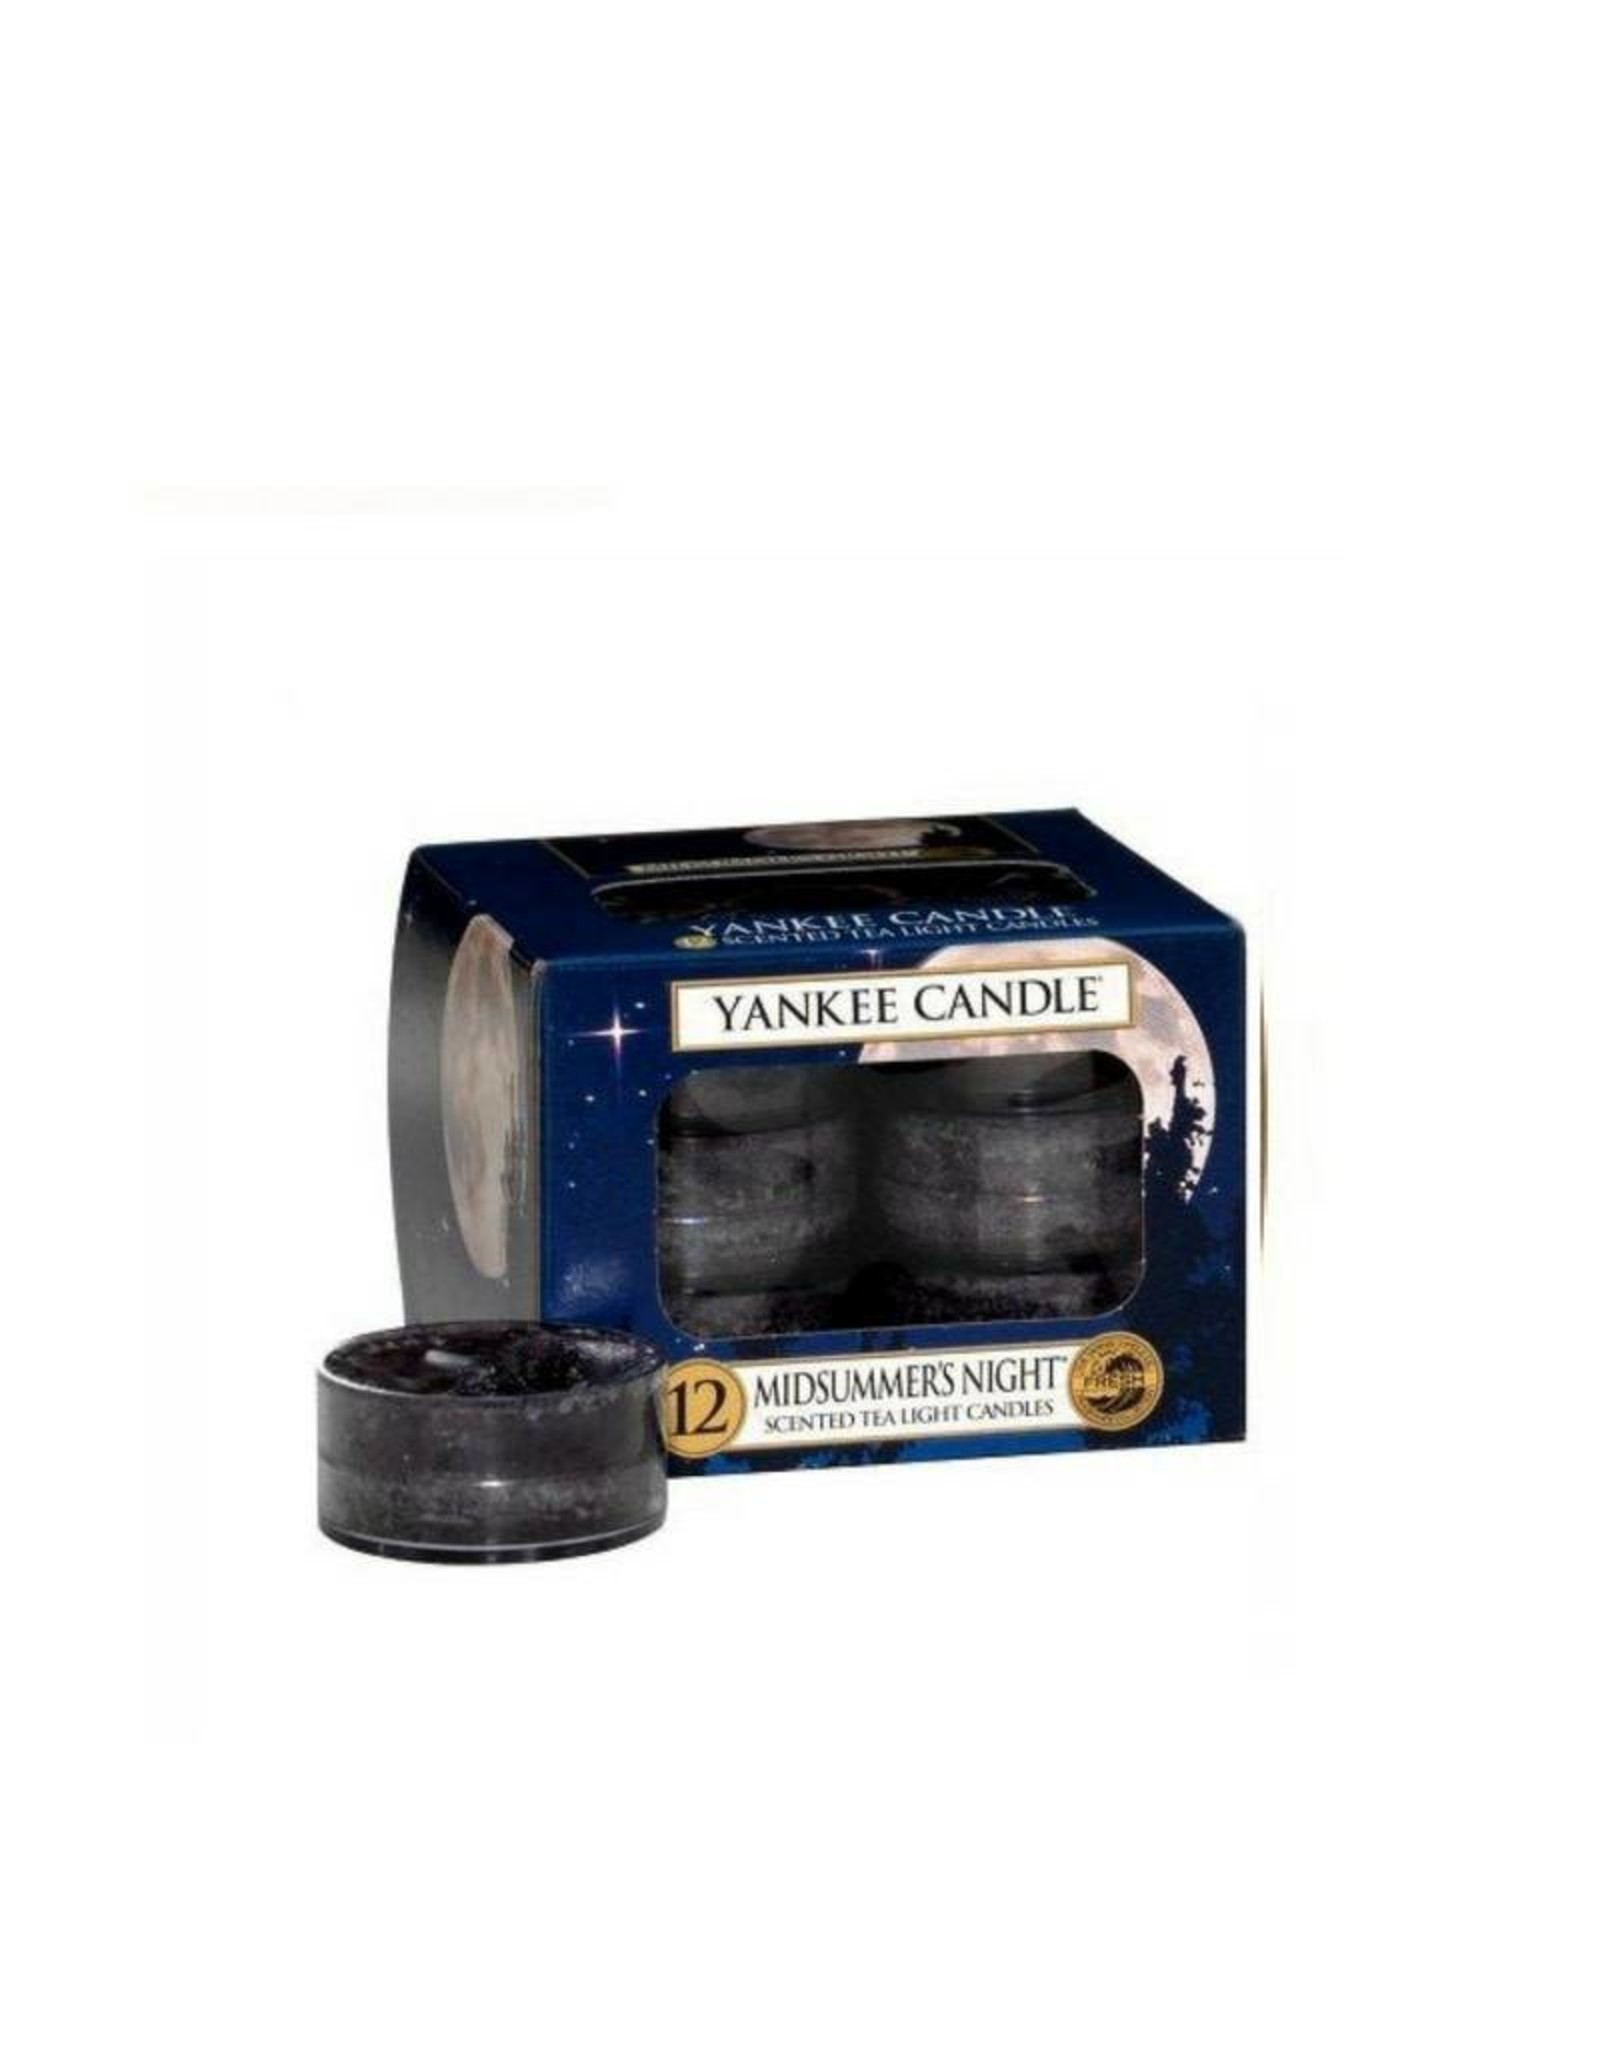 Yankee Candle Midsummers Night Tea Lights 12 st